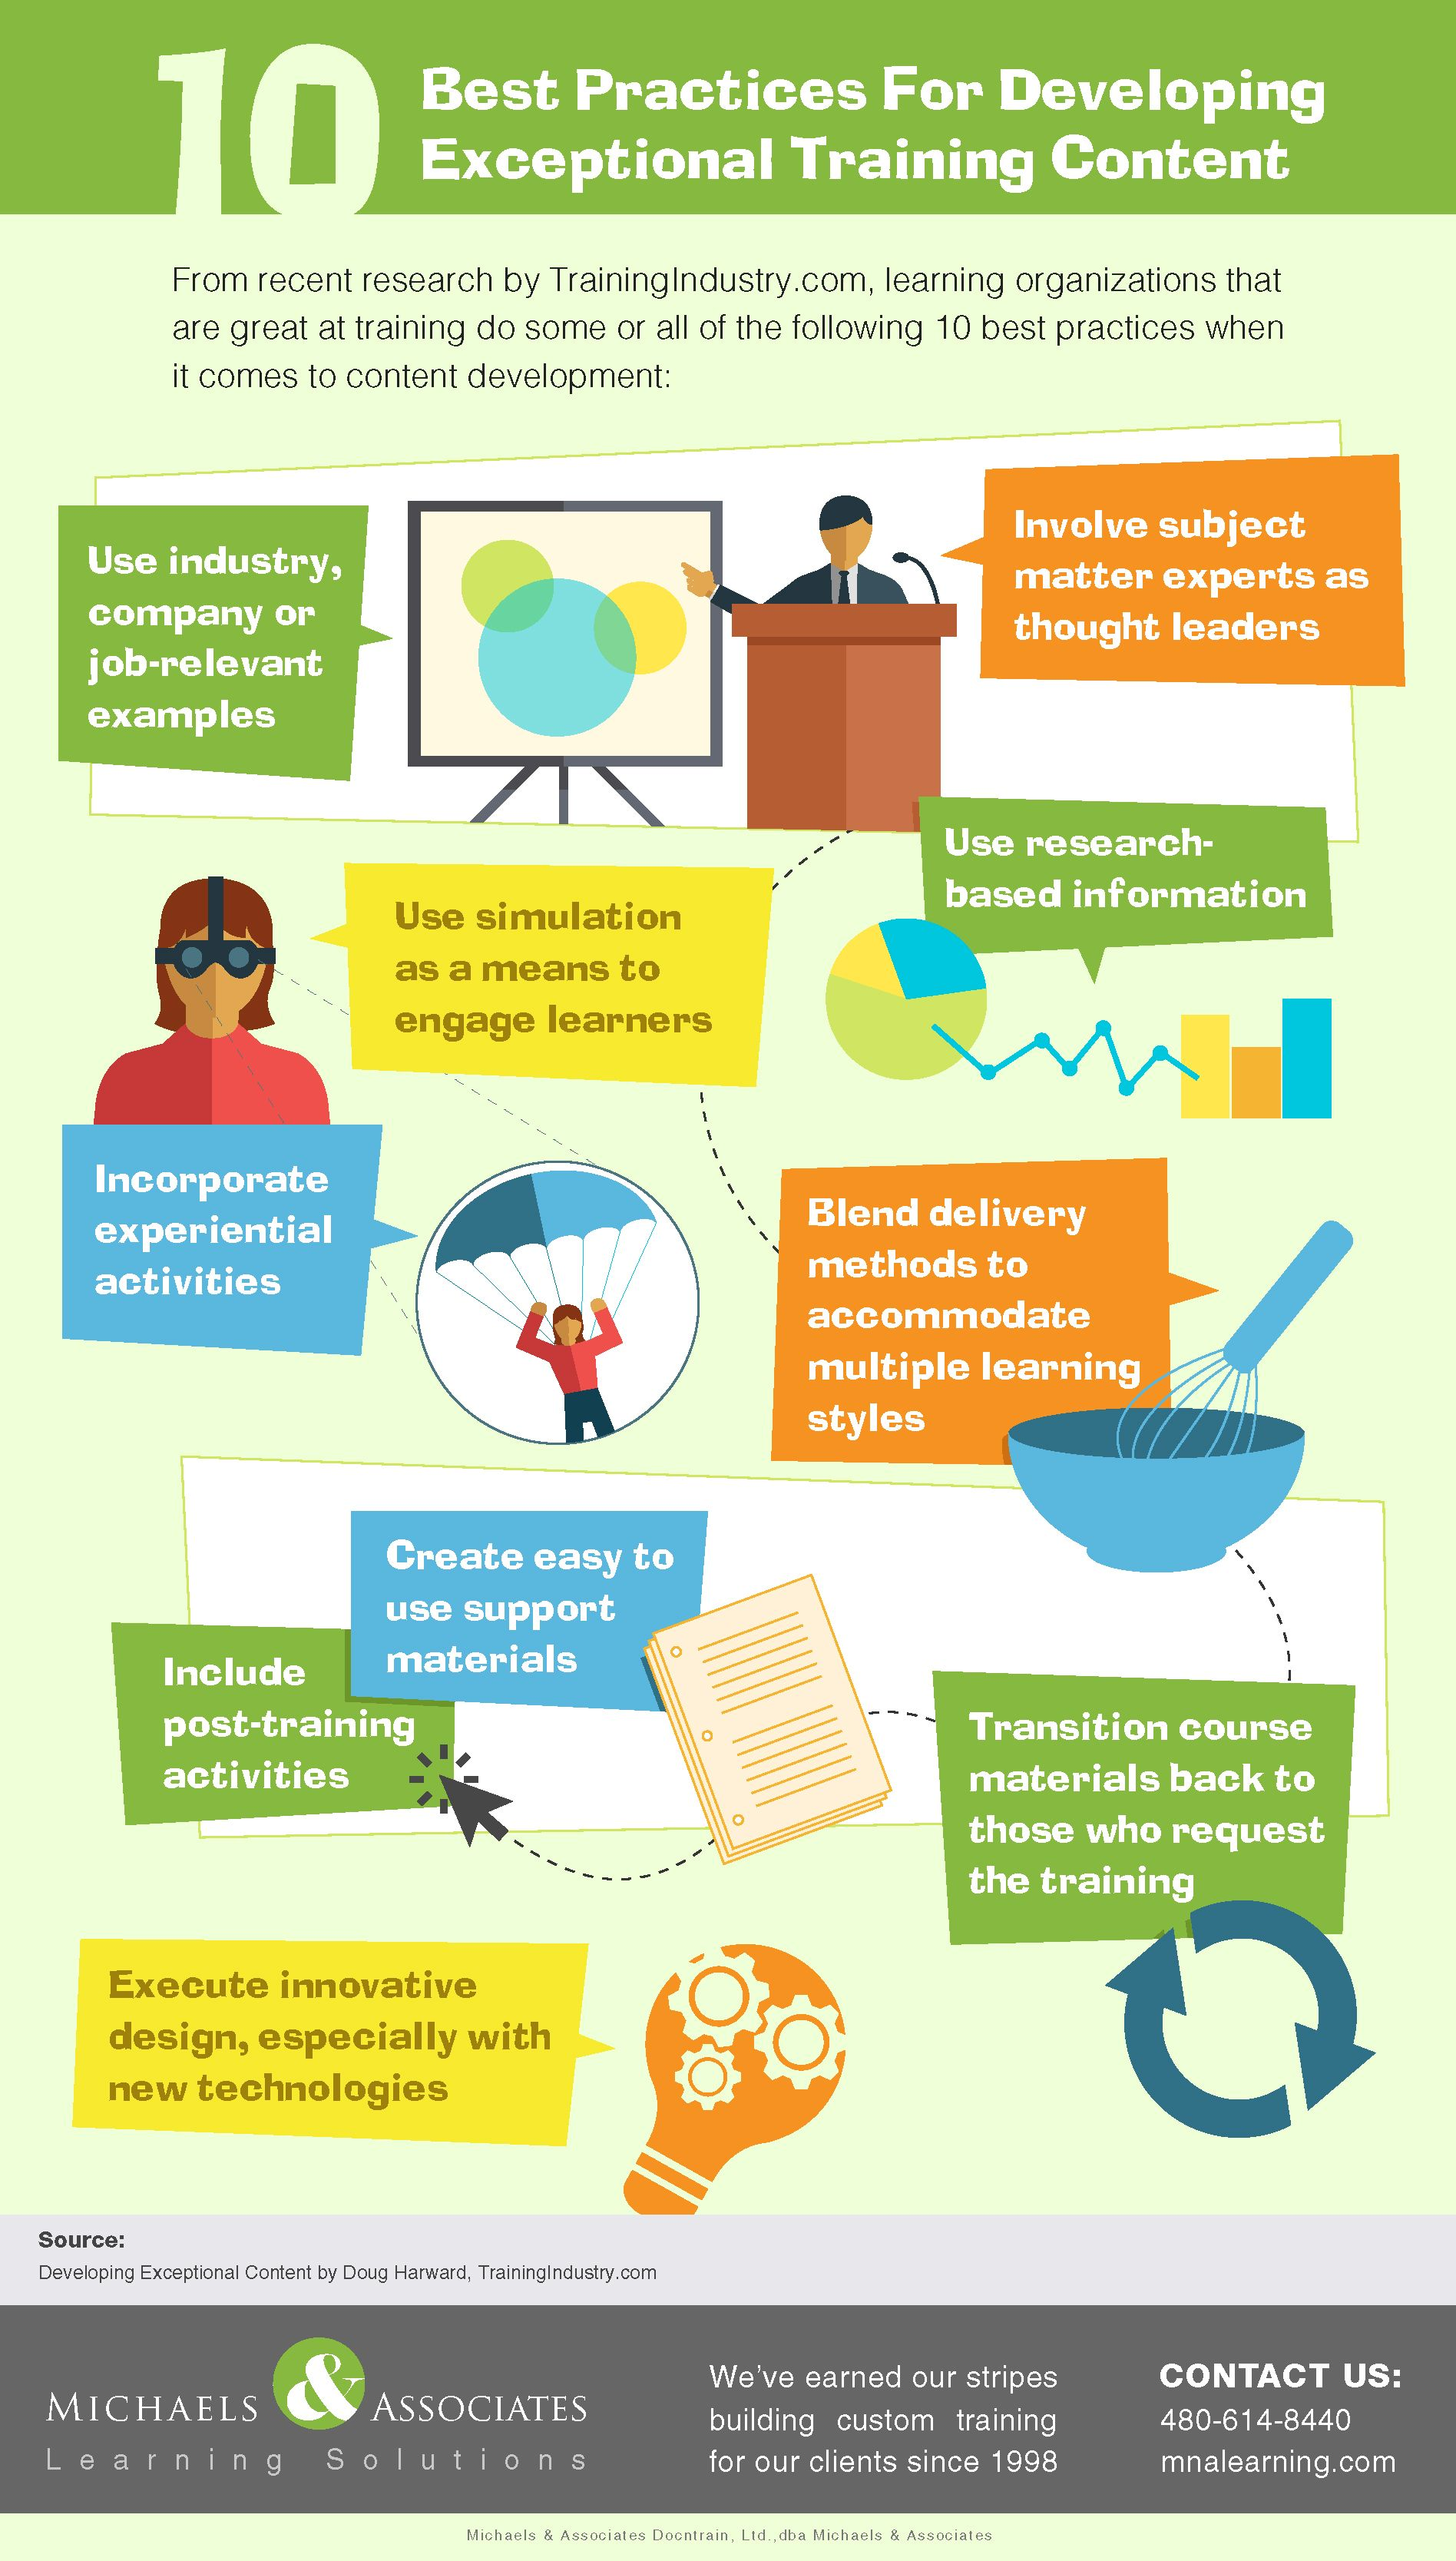 10 Best Practices To Design And Develop Exceptional Training Content Infographic E Learning Infographics Corporate Training Ideas Instructional Design Learning And Development